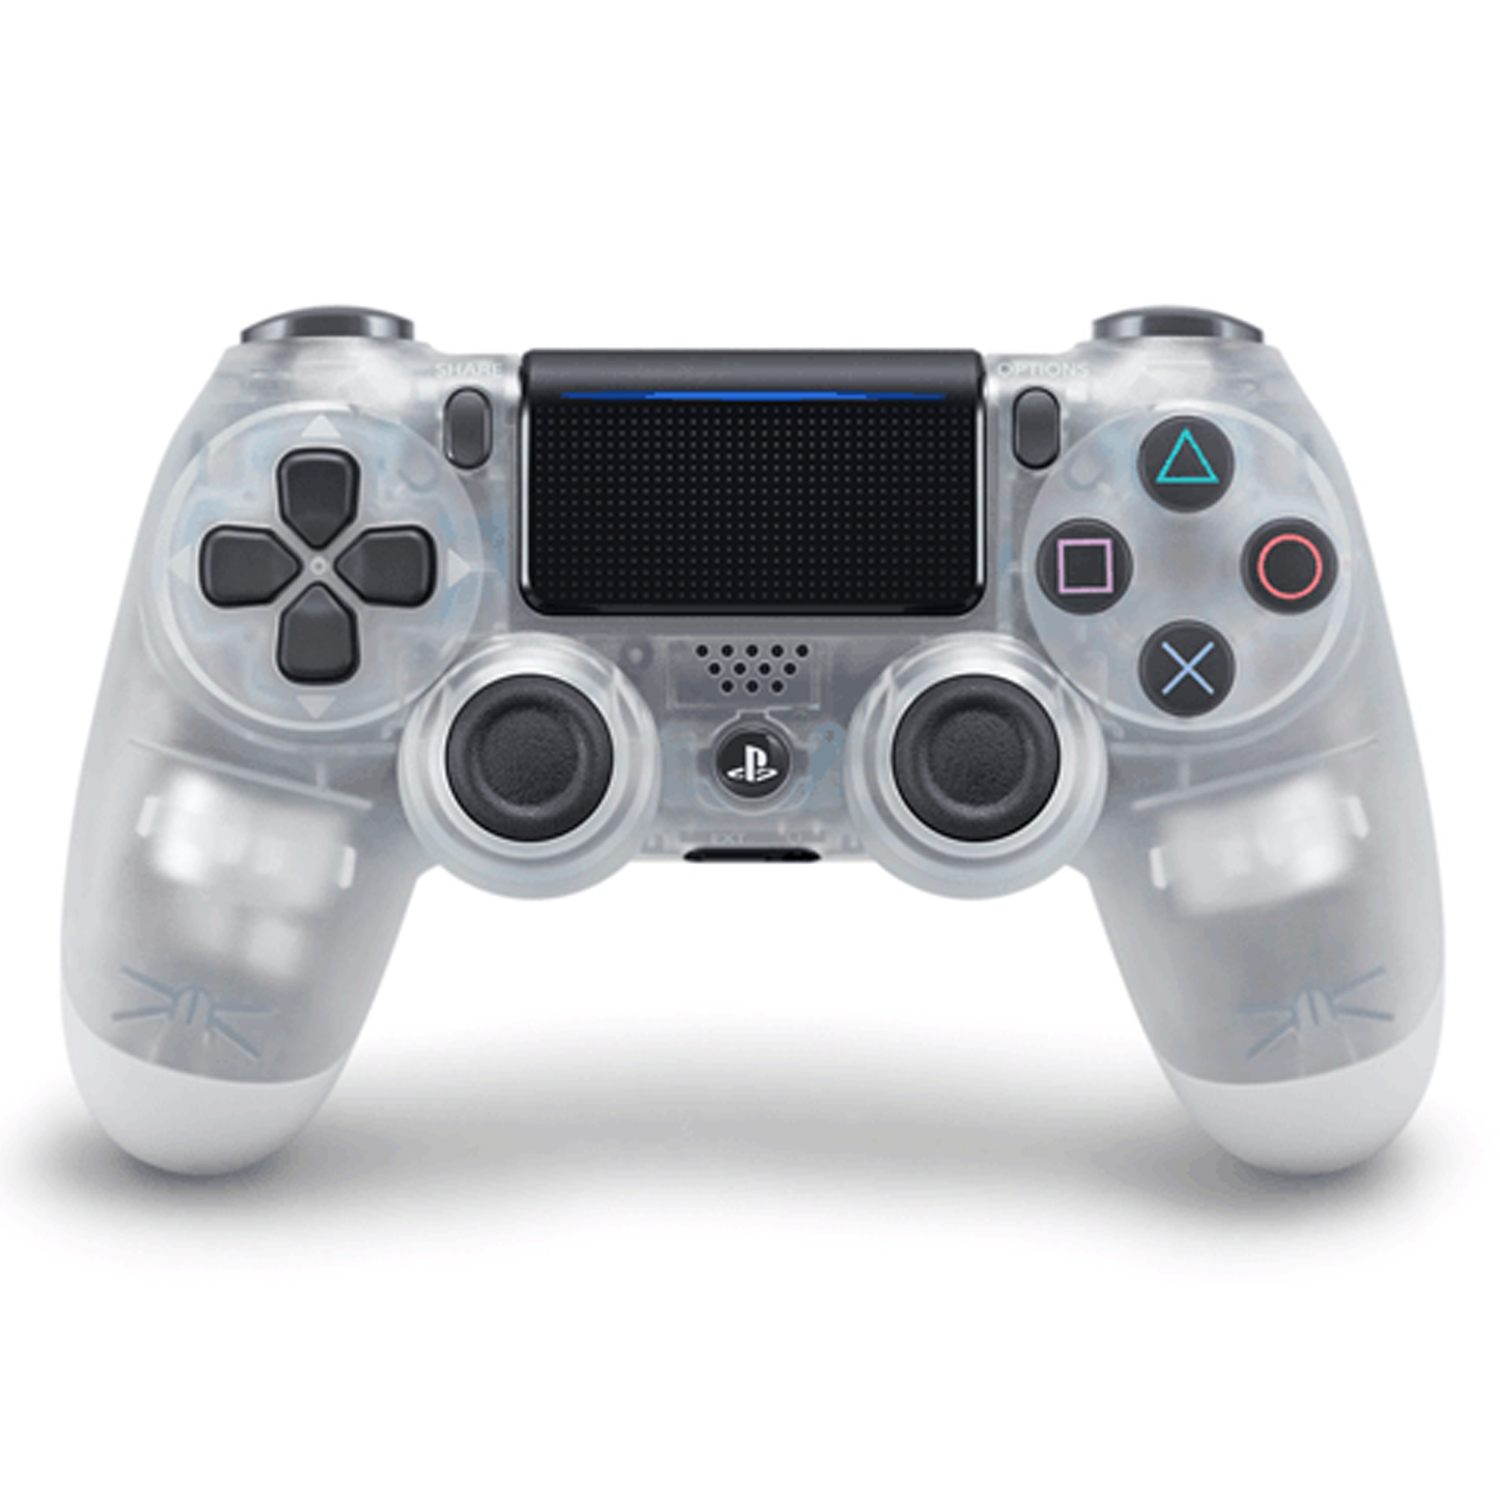 Playstation 3 Dualshock Wireless Controller Stik Ori Putih Op Ps3 Stick Pabrik 2nd Werles Original Warna Source Sony Ps4